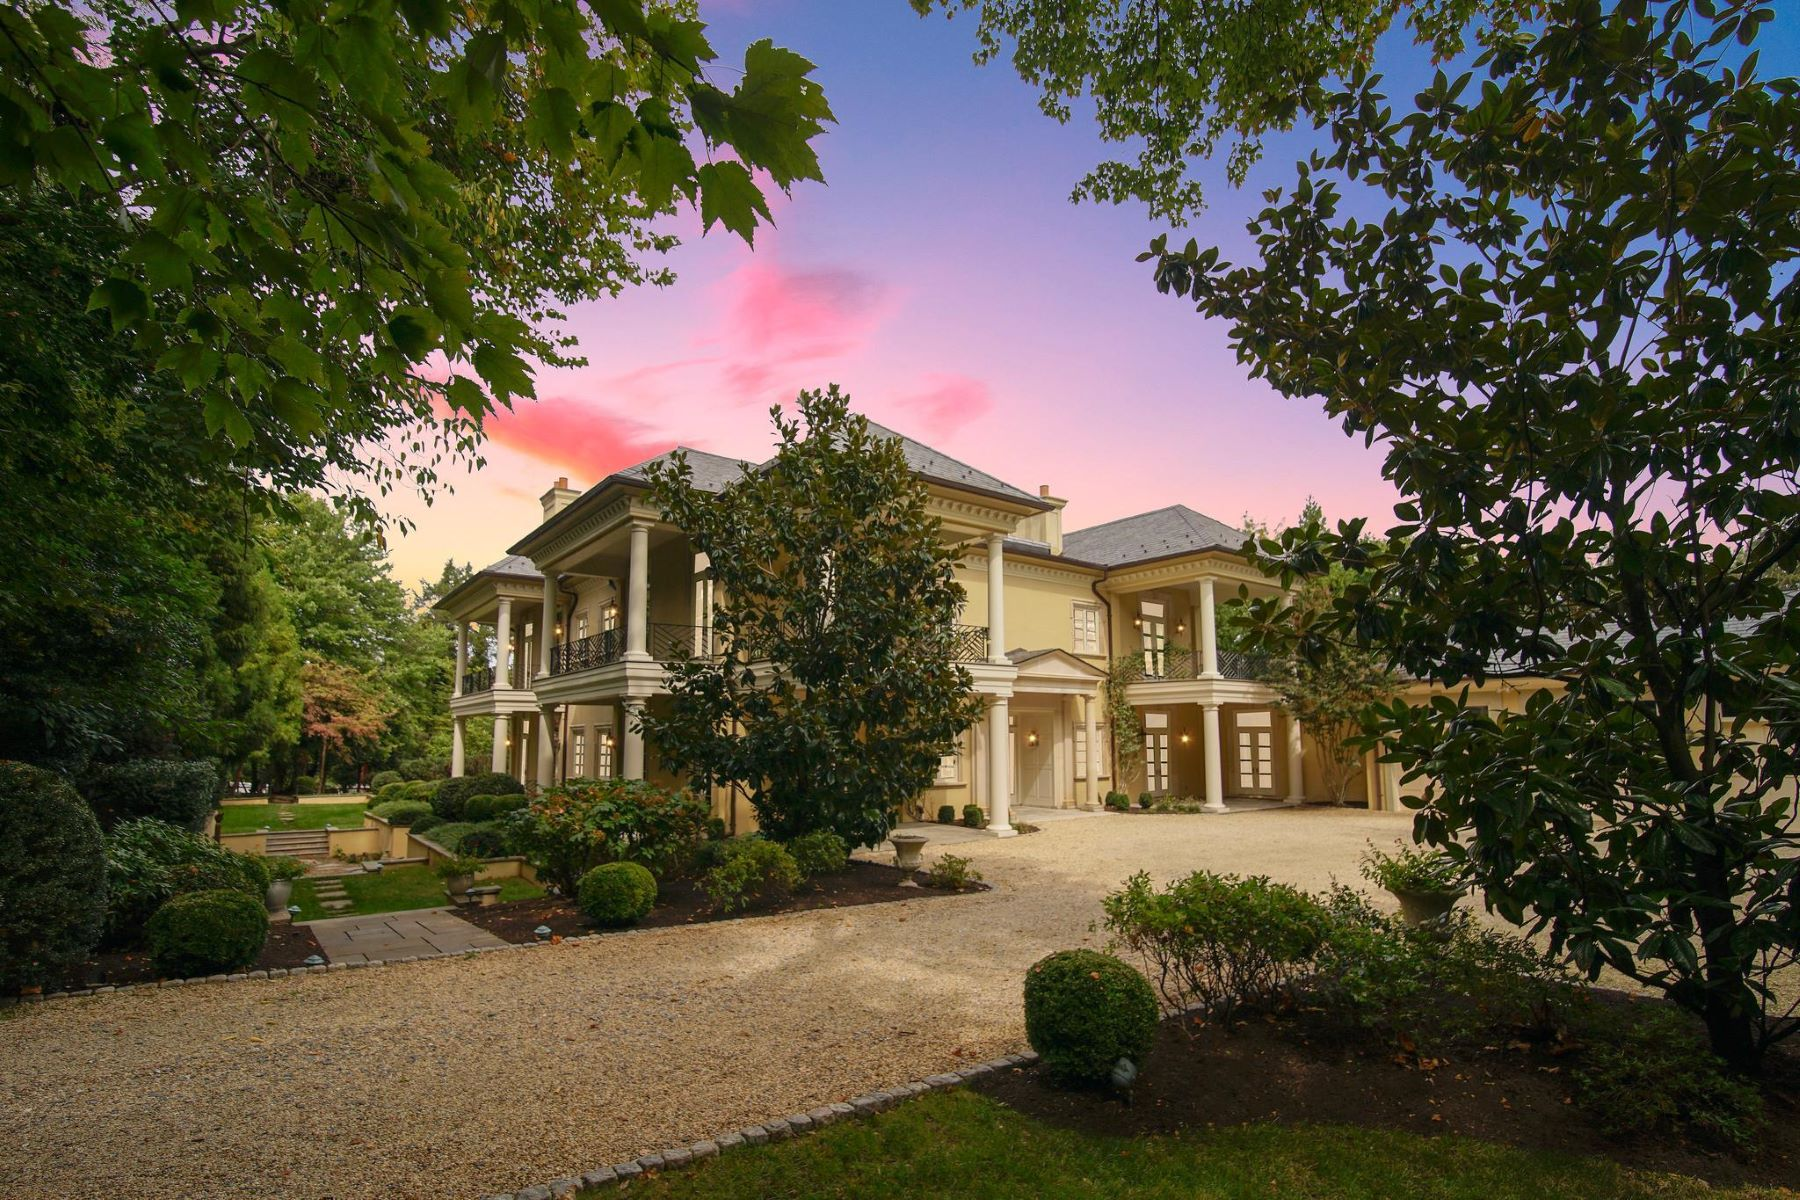 Single Family Home for Sale at 1105 Waverly Way 1105 Waverly Way McLean, Virginia 22101 United States